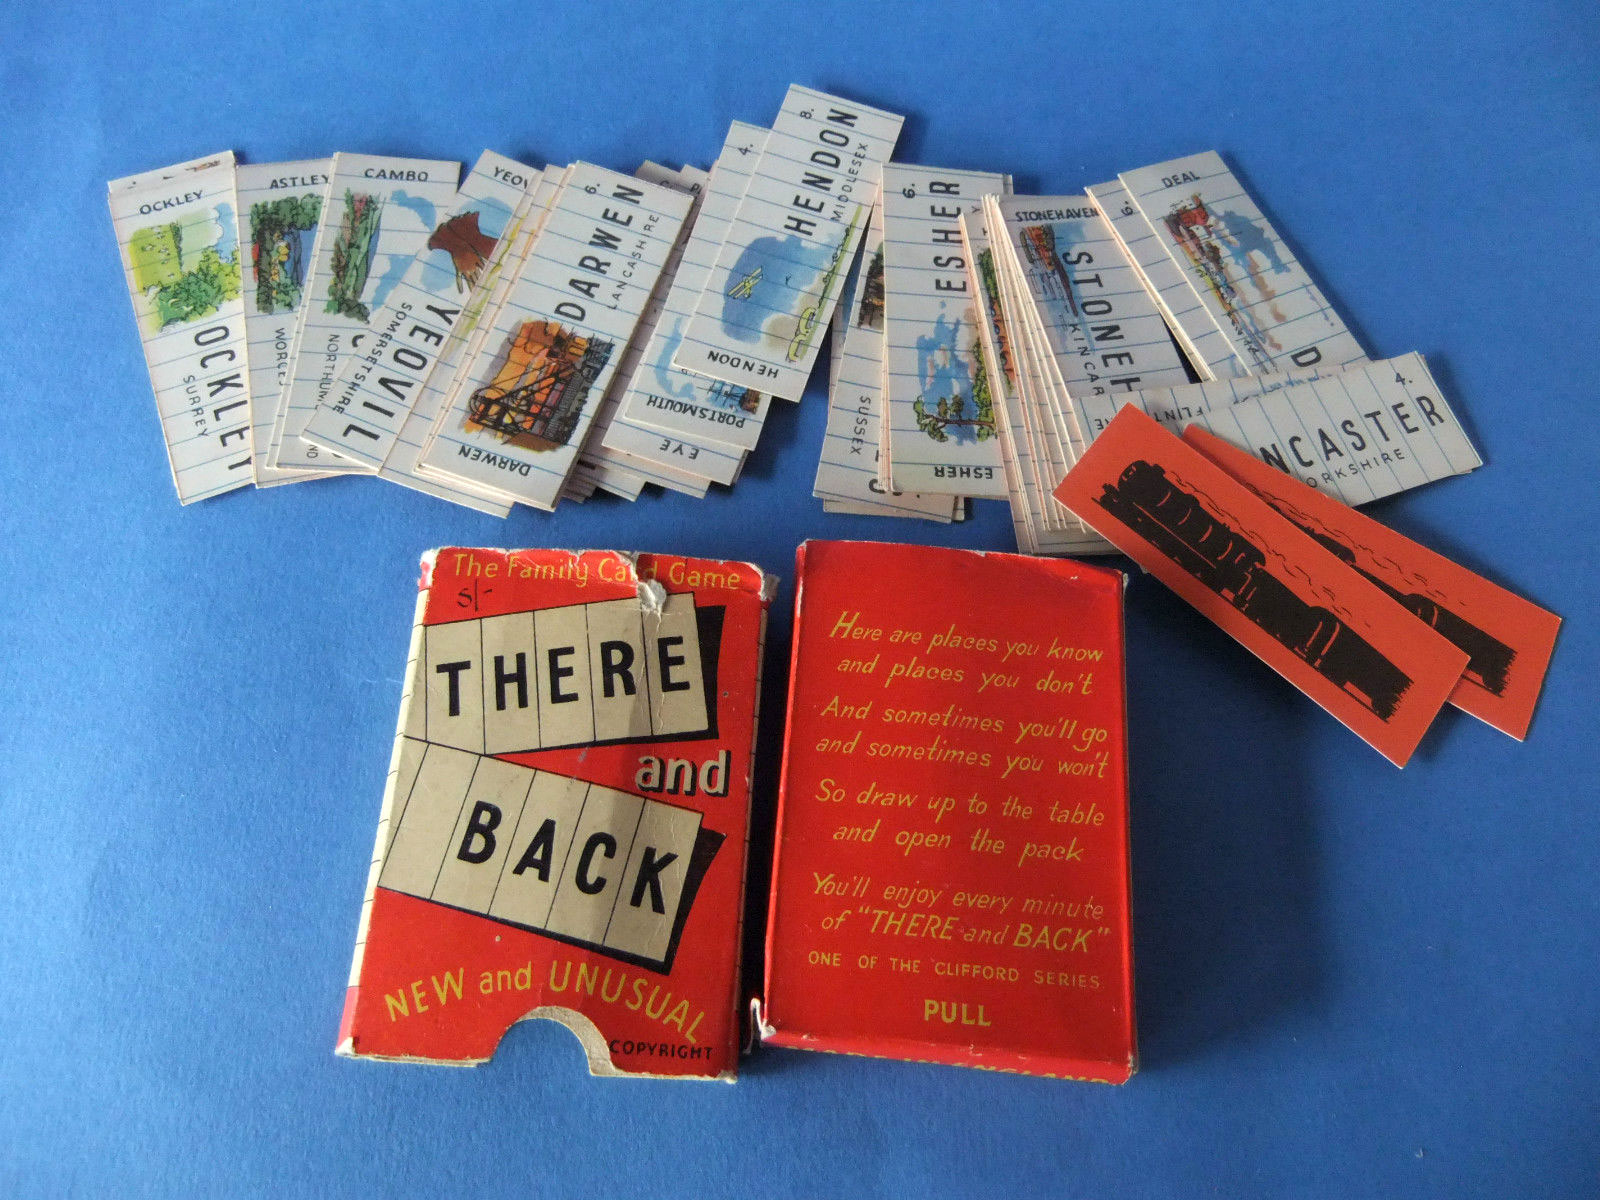 There and Back published by Clifford, c.1955